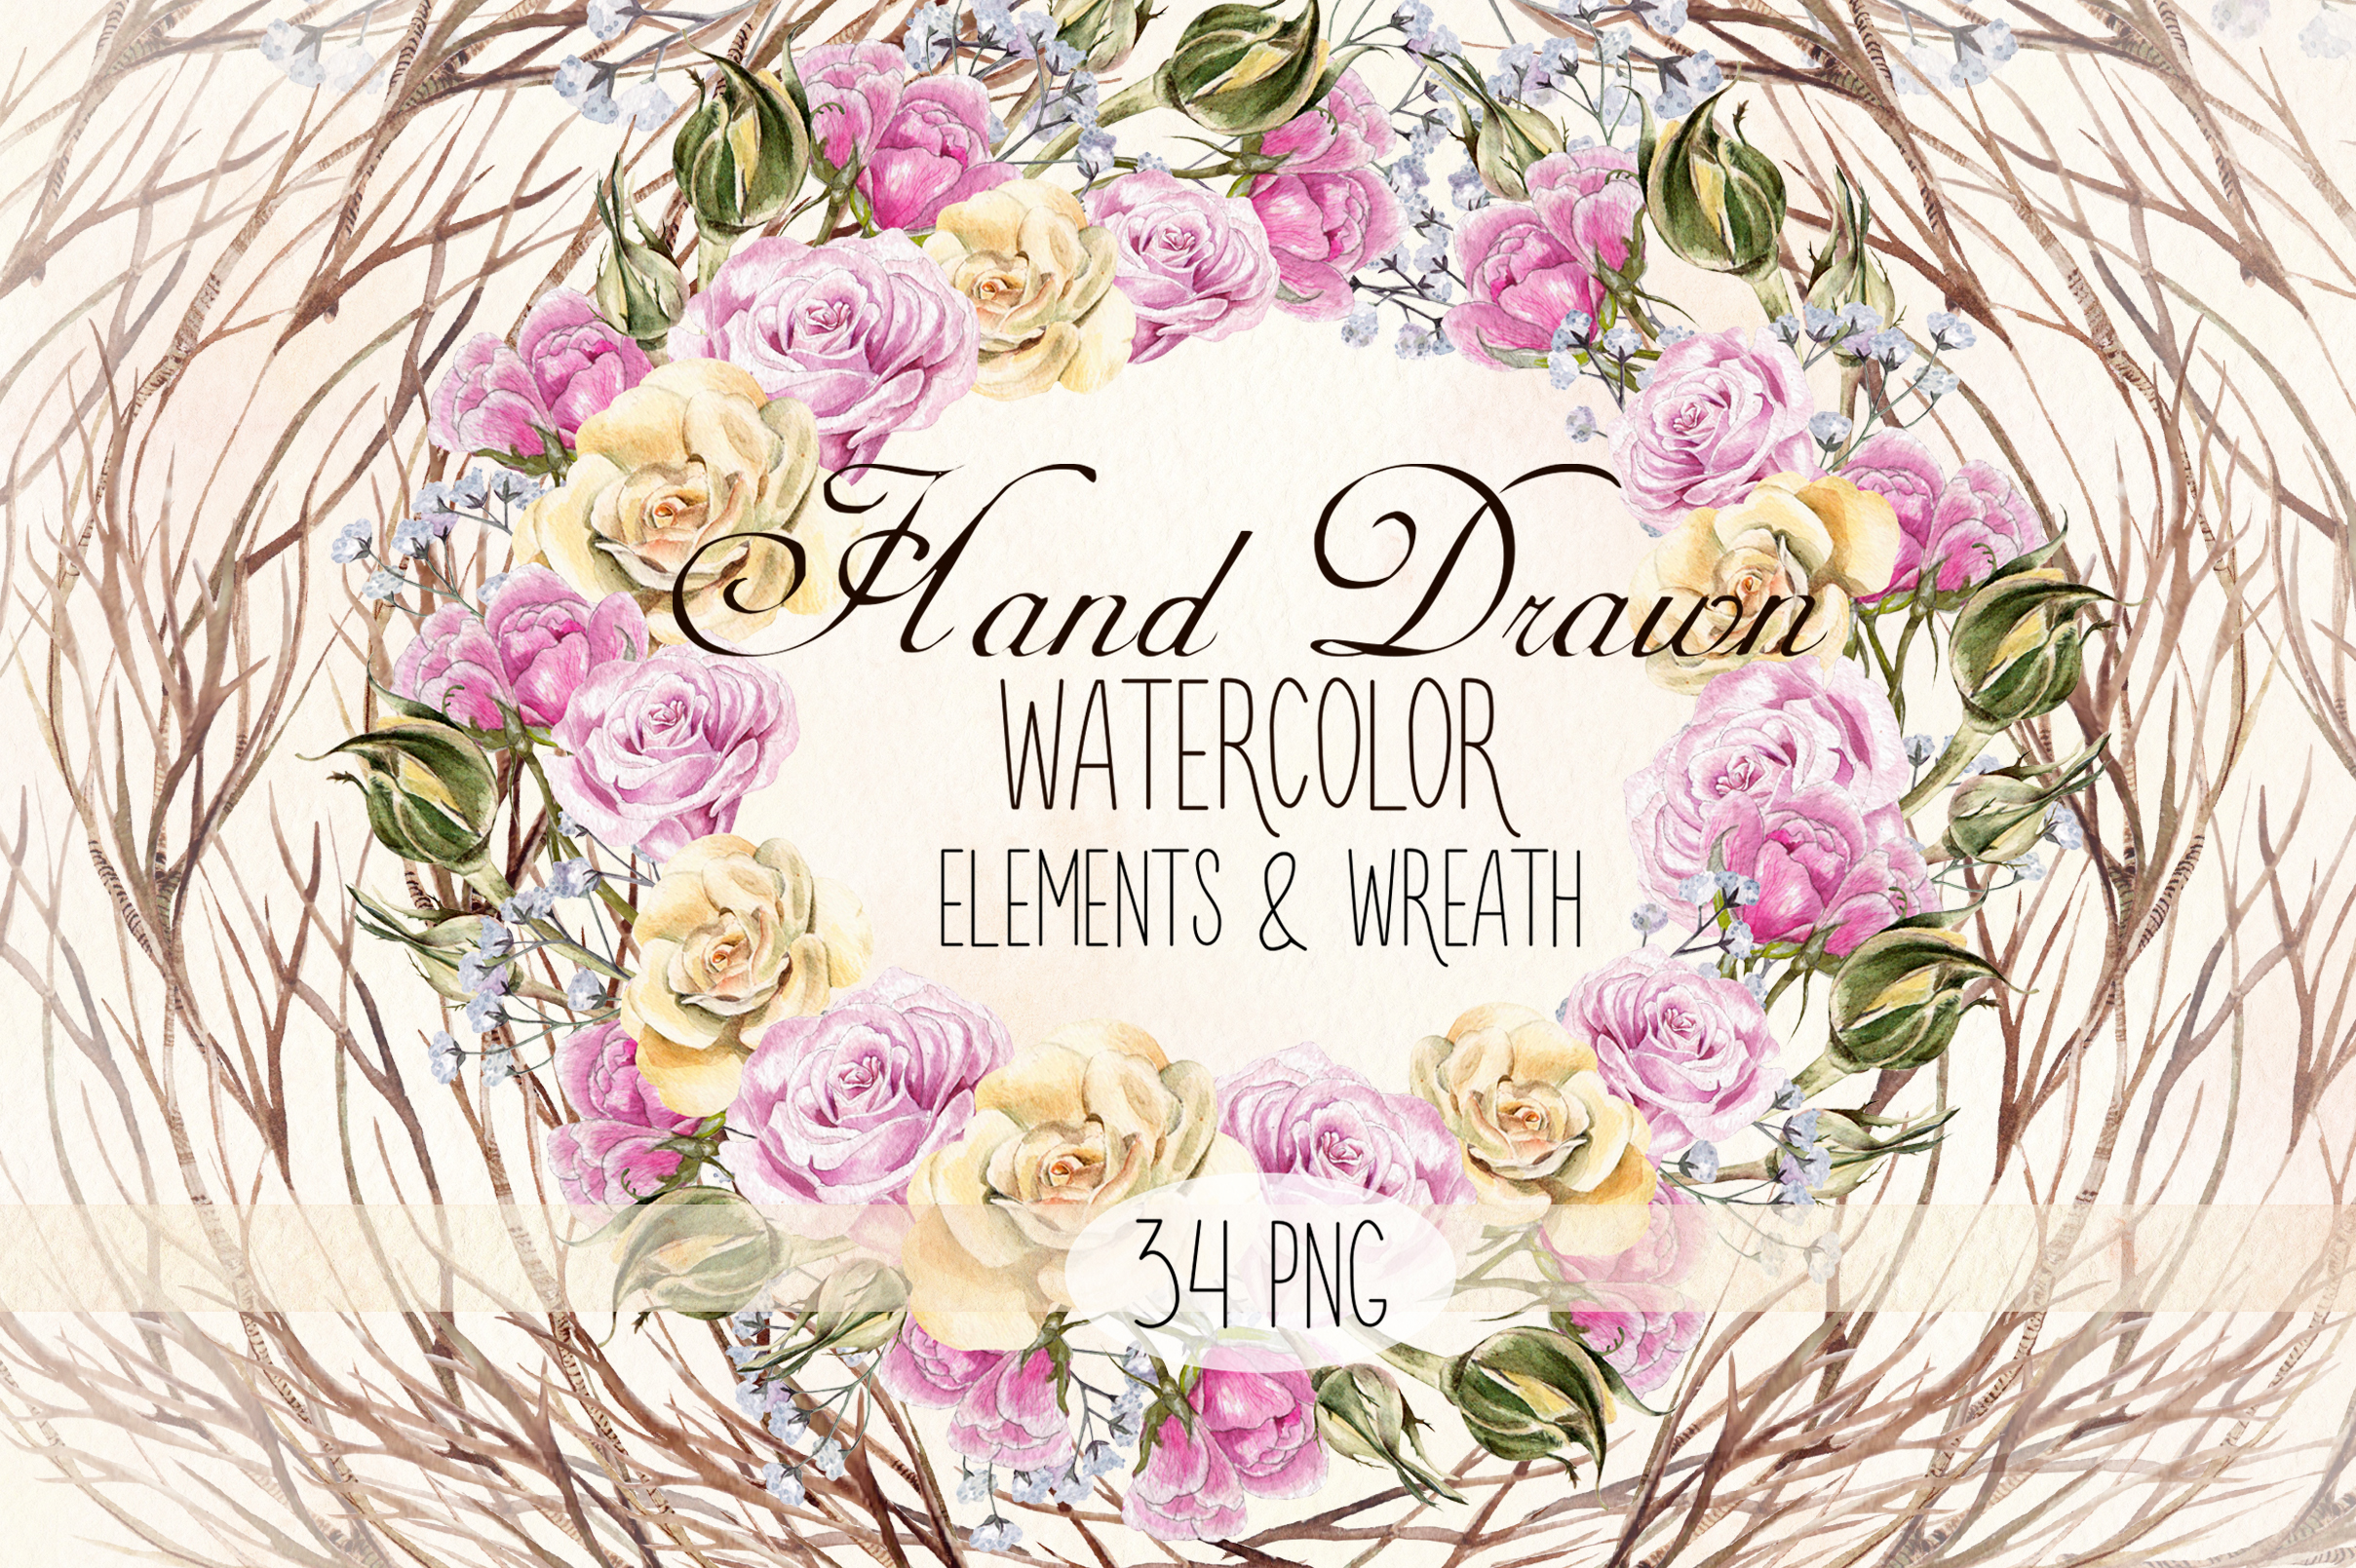 Watercolor Elements & Wreath example image 1